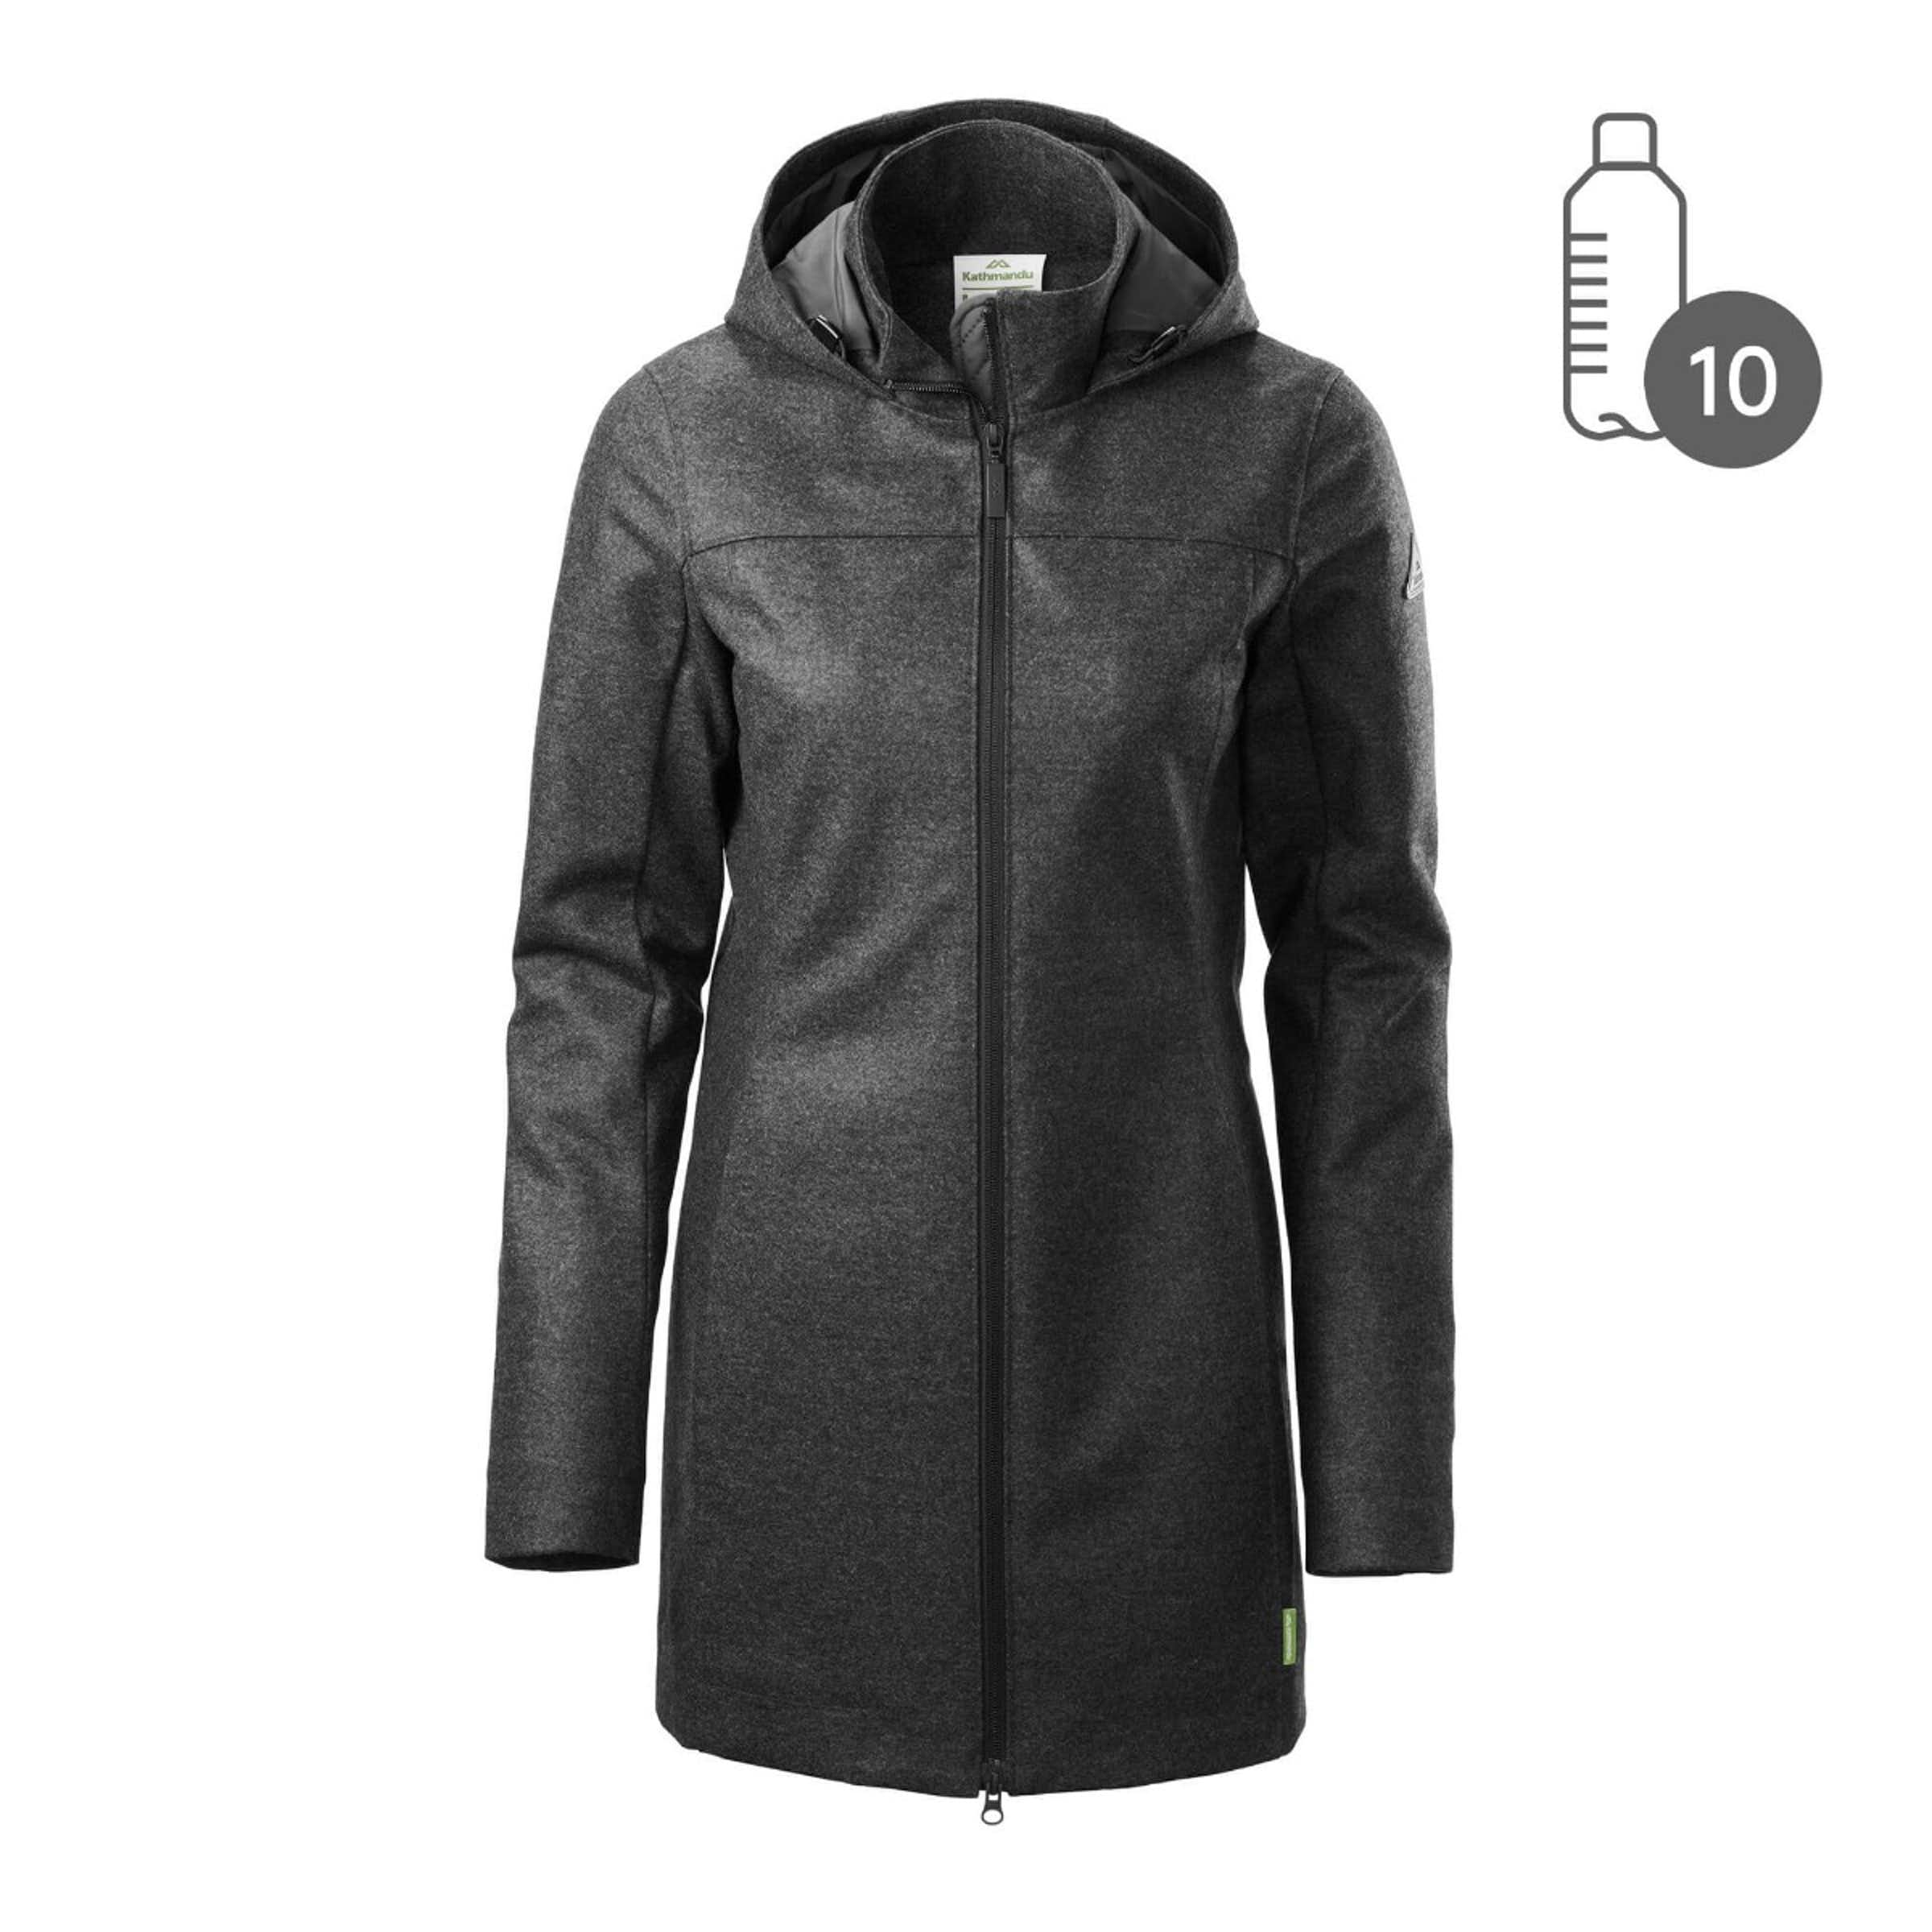 Womens Merino Wool Jackets | Wool Coats for Ladies | AU